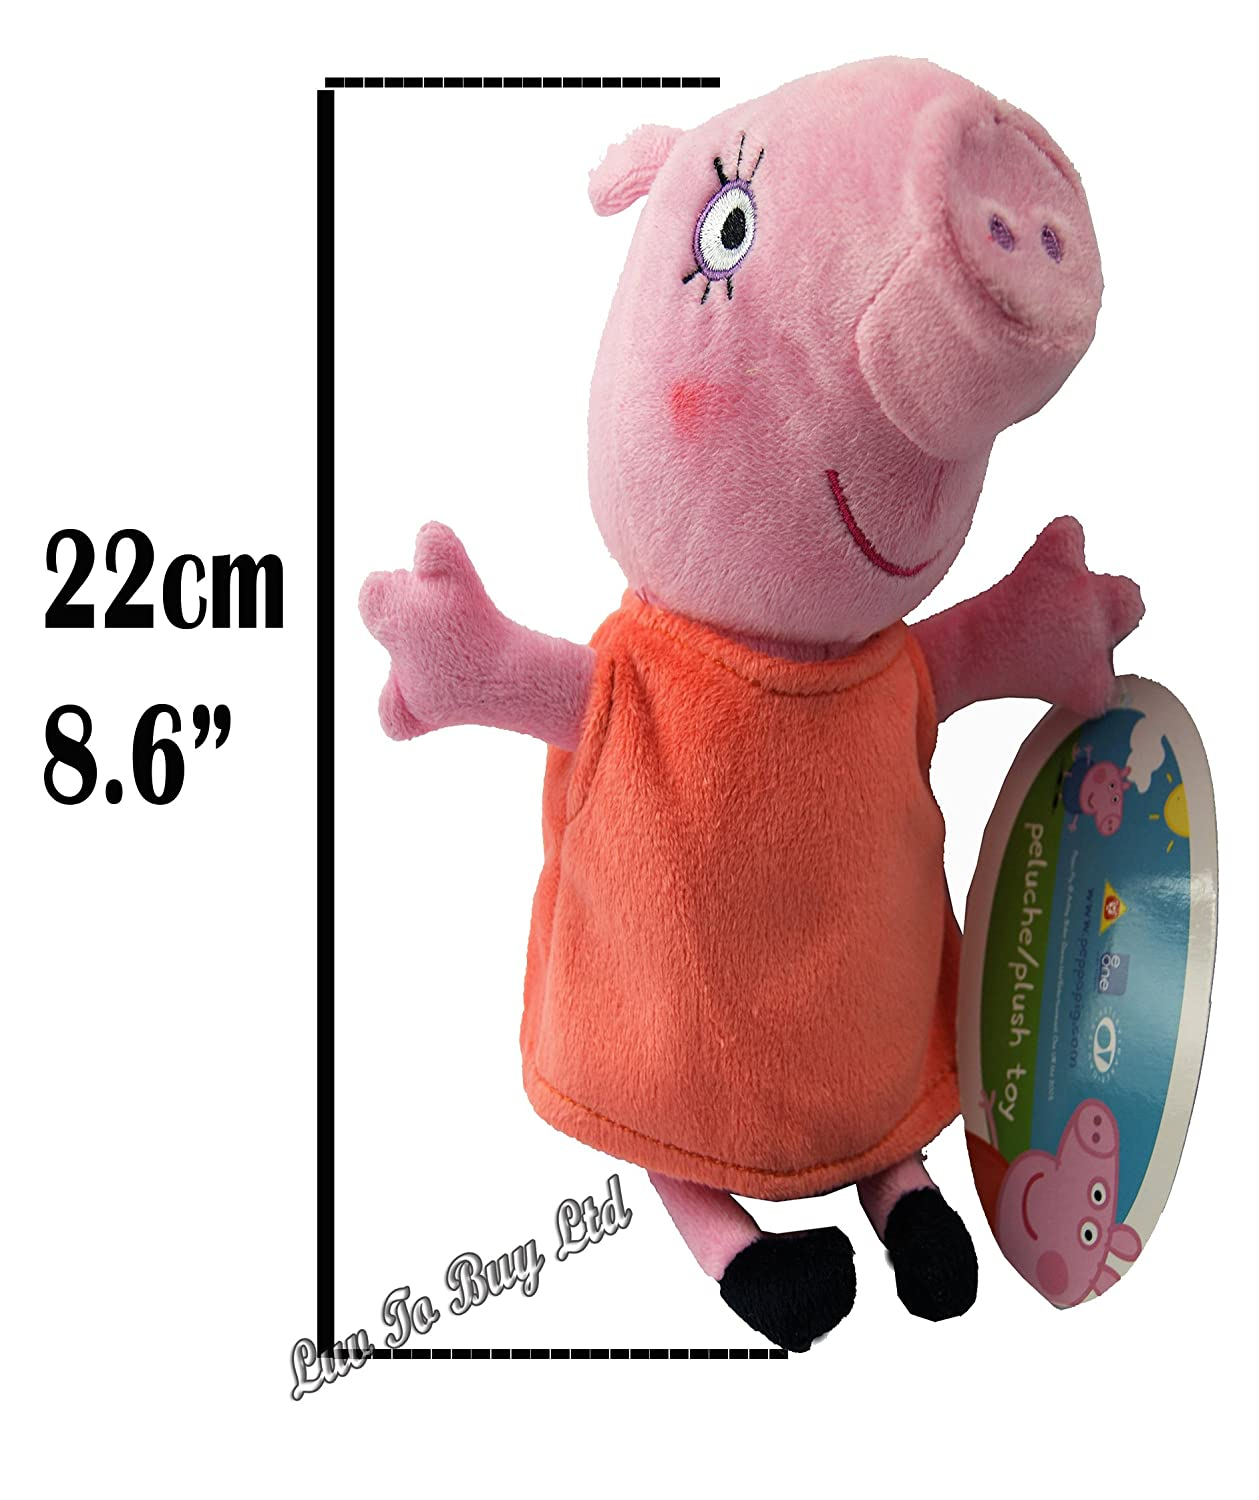 Amazon.com: Adorable Original Peppa Pig Family & Friends Plush Toys, 8 Different Characters,8 assorted peppa pig soft toy (Mummy Pig): Toys & Games